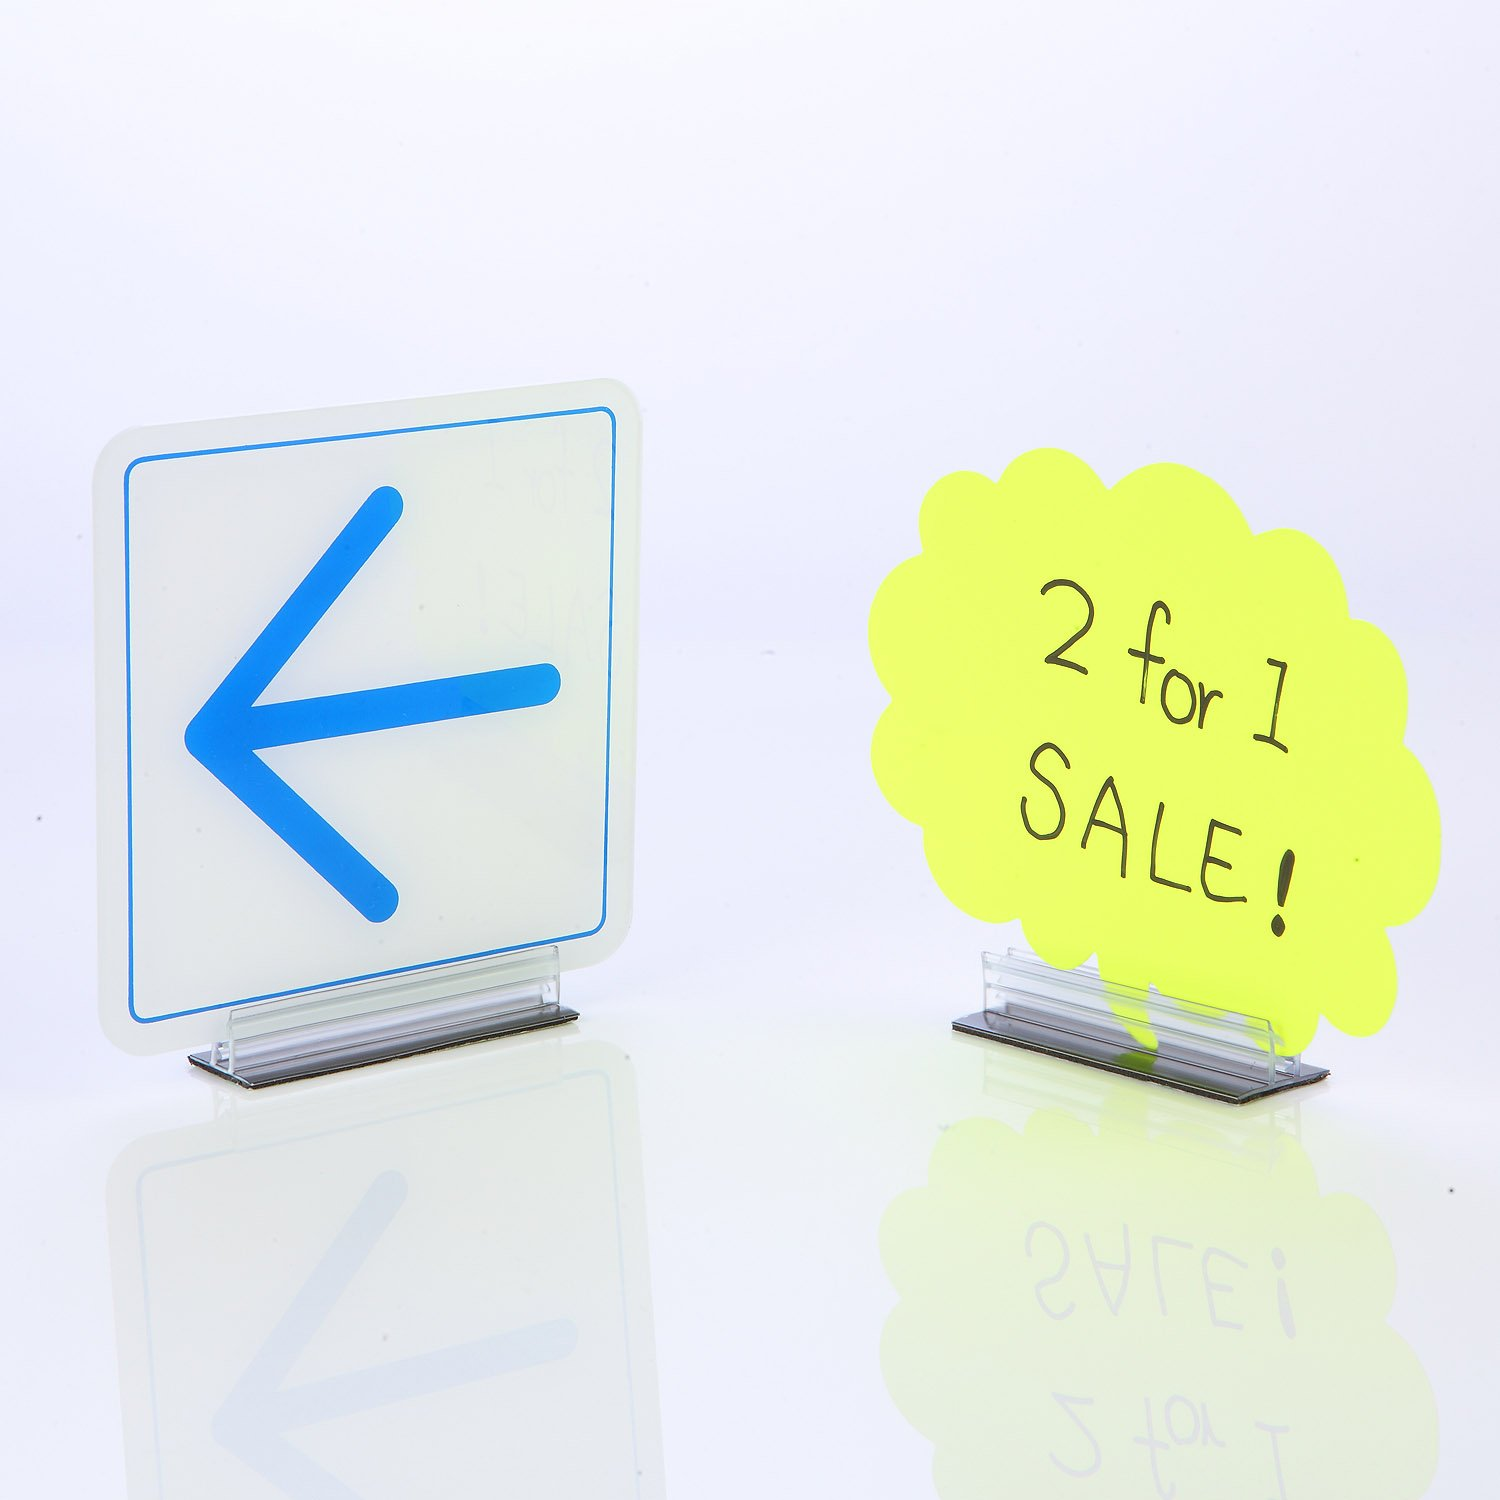 Pack of 100 KYC Plastic Retail Store Fixtures Aisle Shelf Edge Sign Holder 1x 3 T-Style Grip with 3M Adhesive Back